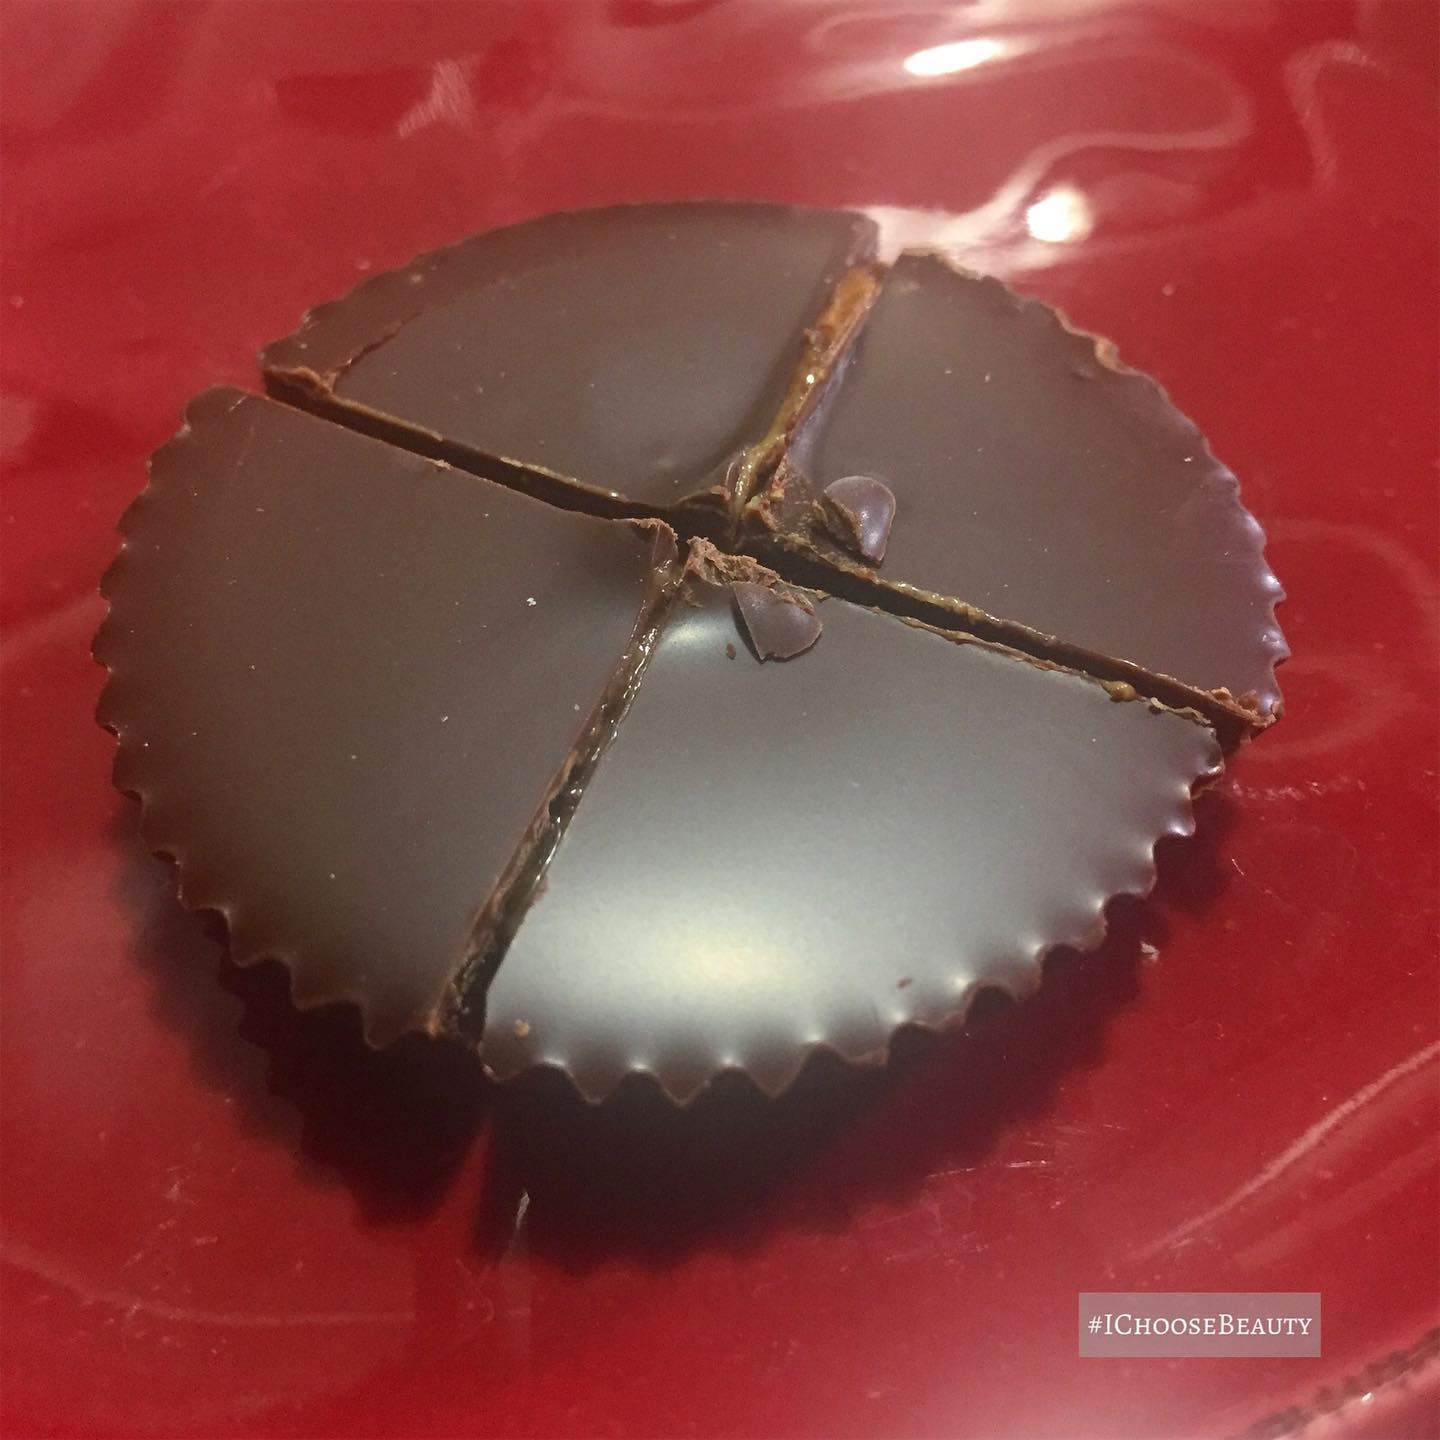 Sometimes I like to fancy up my @justins dark chocolate peanut butter cups by cutting them up and eating them off a pretty plate. 🤷🏽♀️ #ichoosebeauty Day 2672